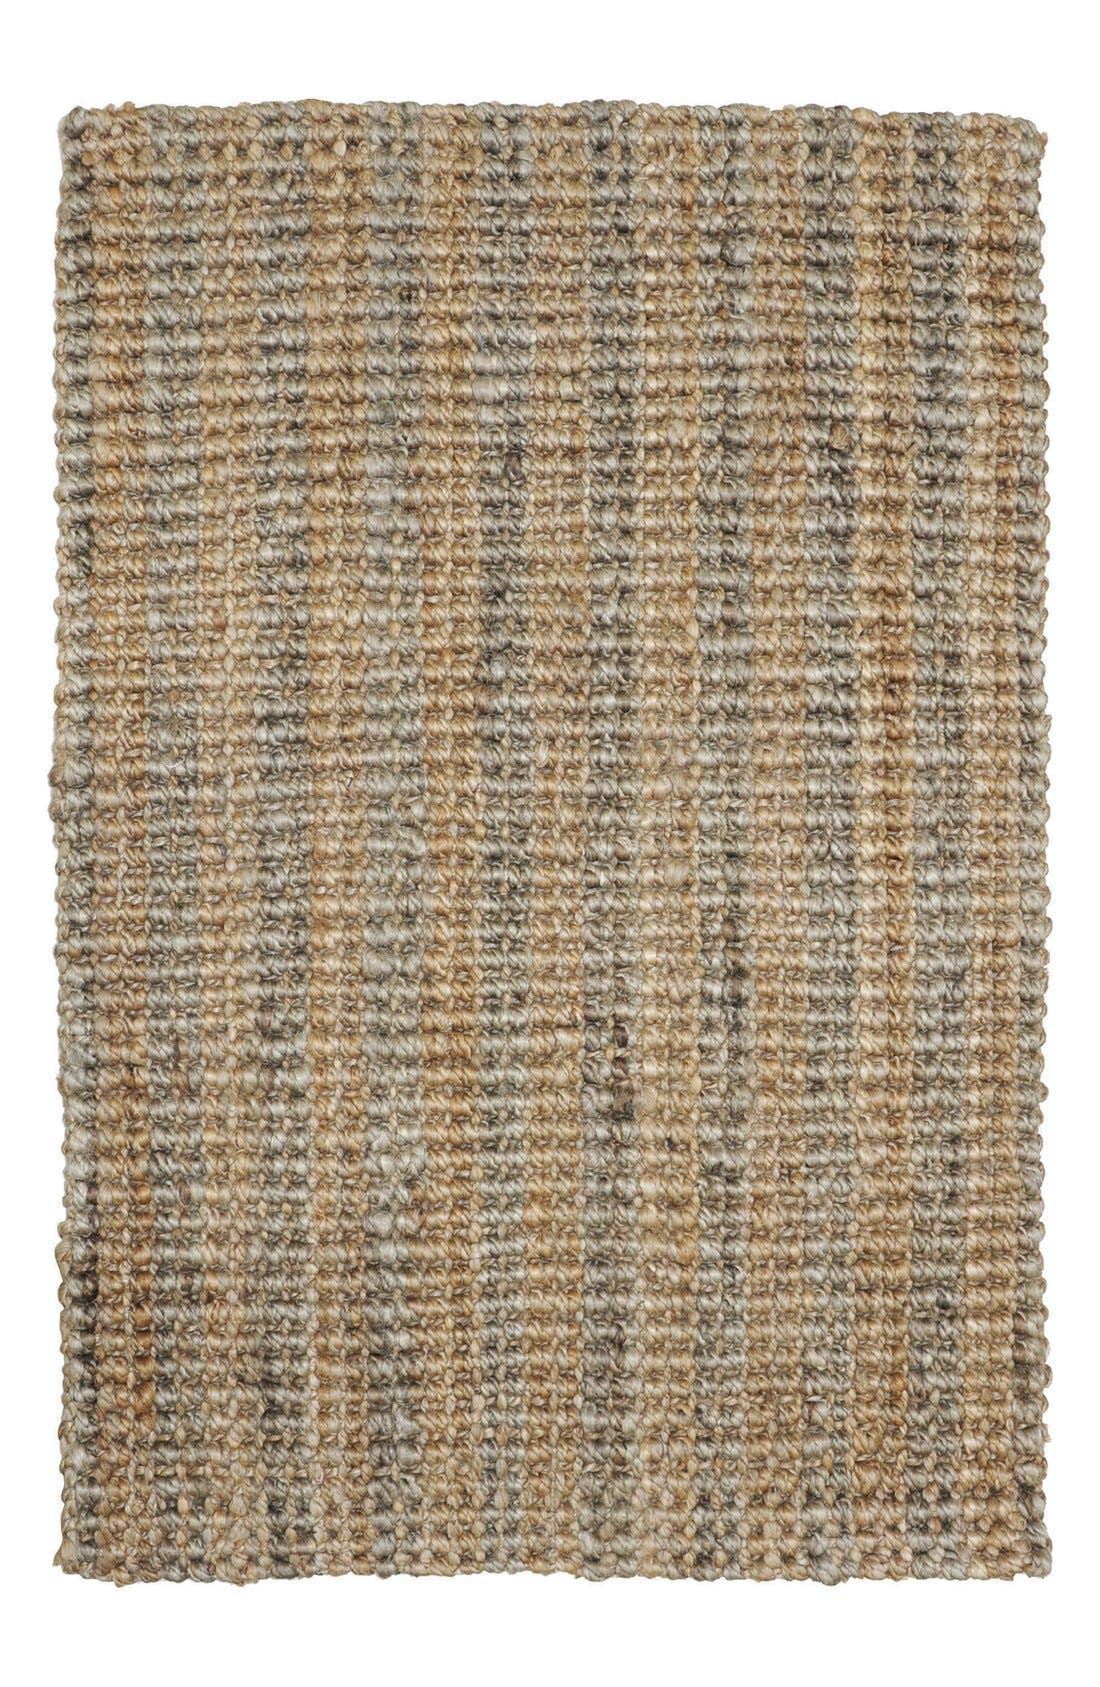 Bouclé Handwoven Rug,                             Main thumbnail 1, color,                             250